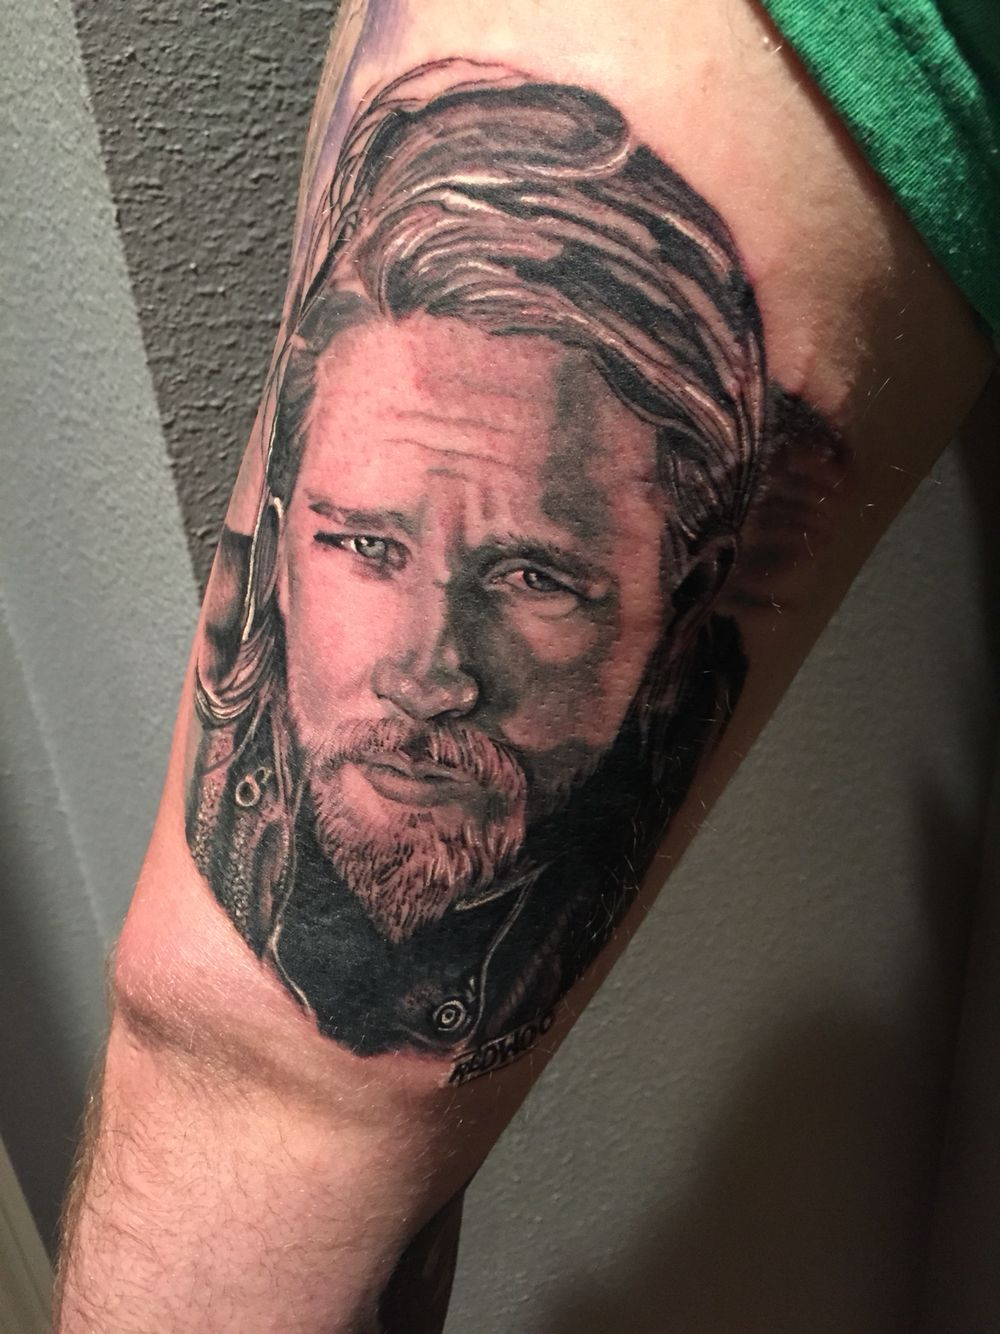 Jax teller sons of anarchy tattoo the amazing doug hatter for Sons of anarchy tattoos